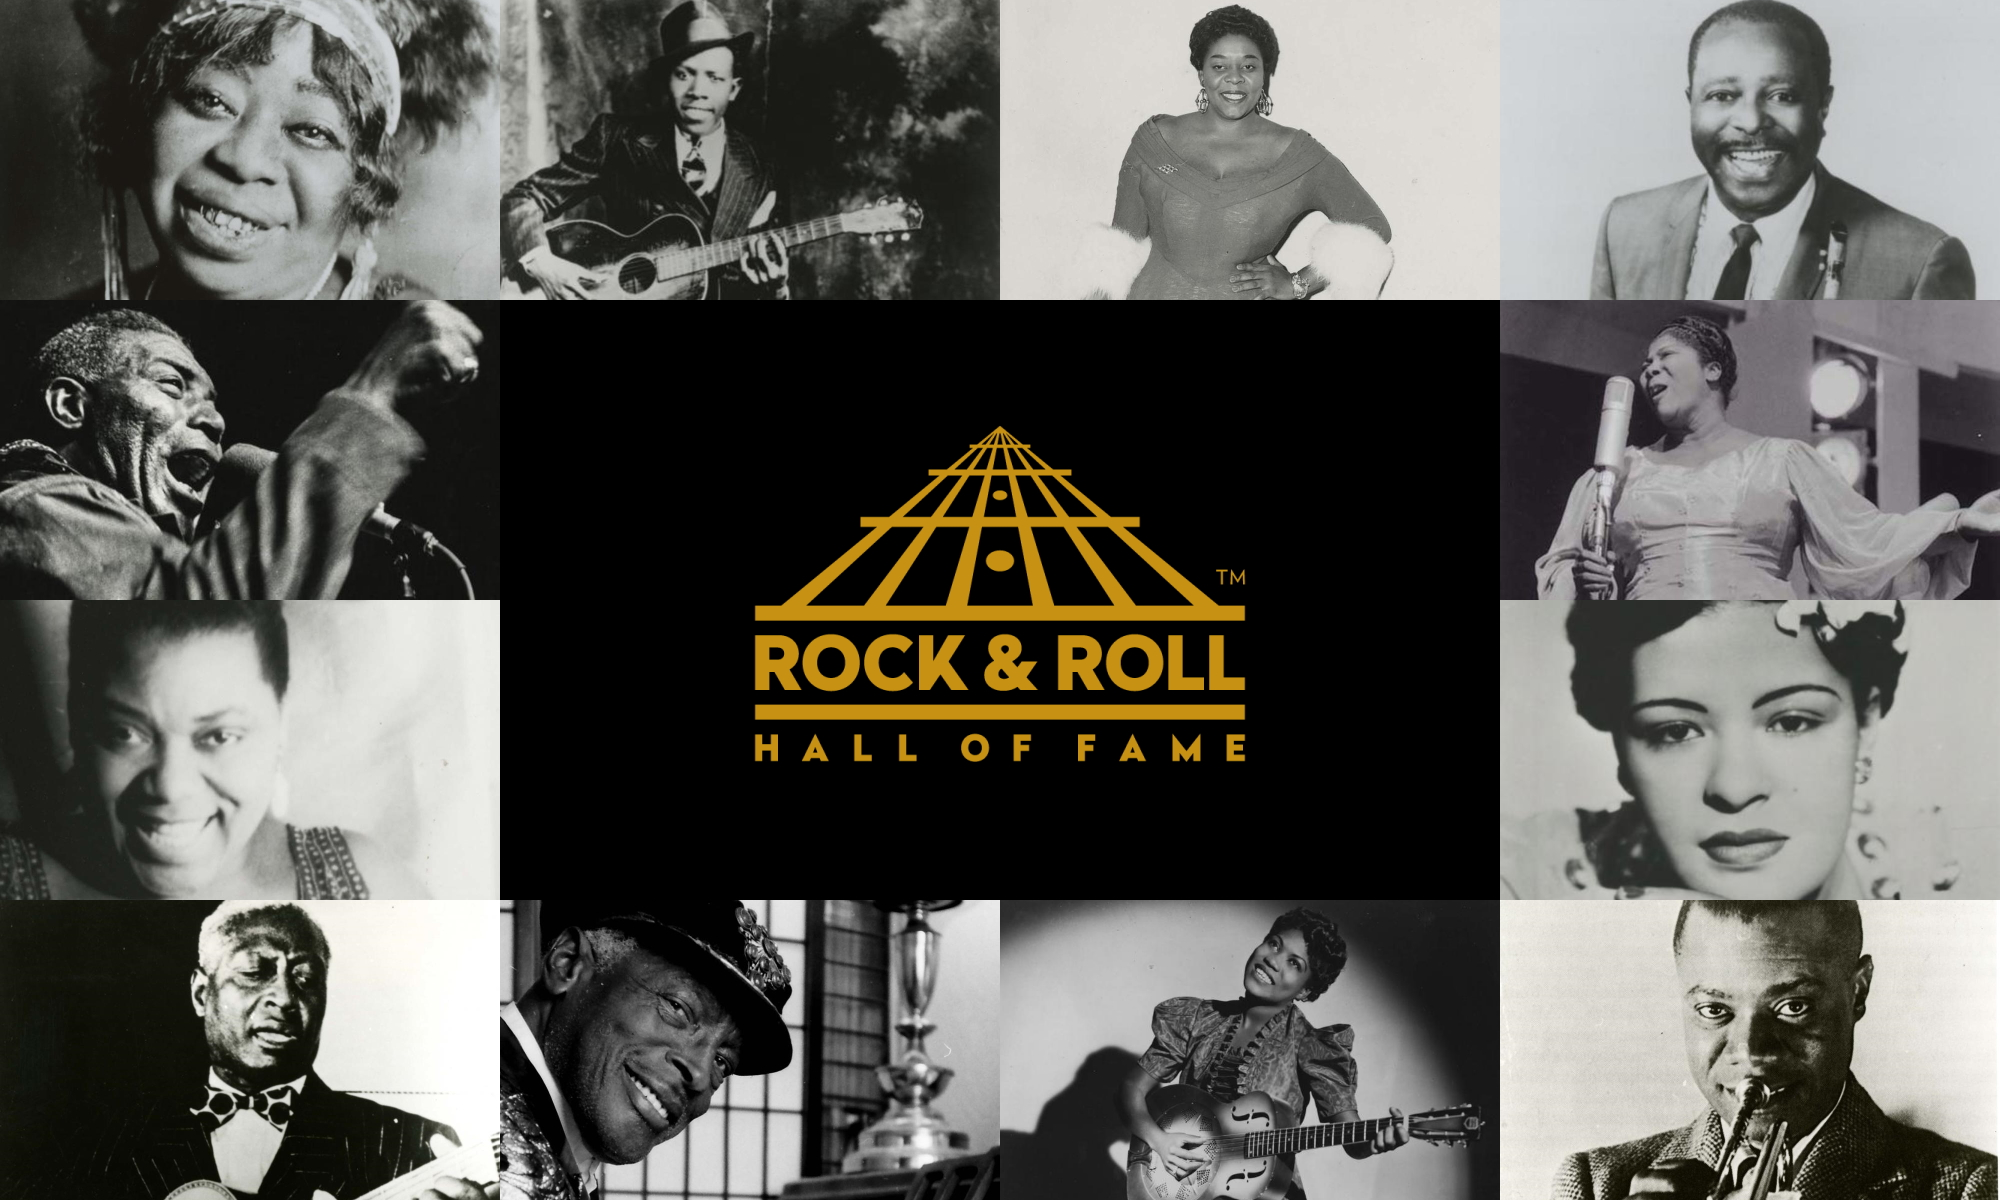 Rock & Roll Hall of Fame Announces Special Programming to Celebrate Black Music Appreciation Month and Juneteenth